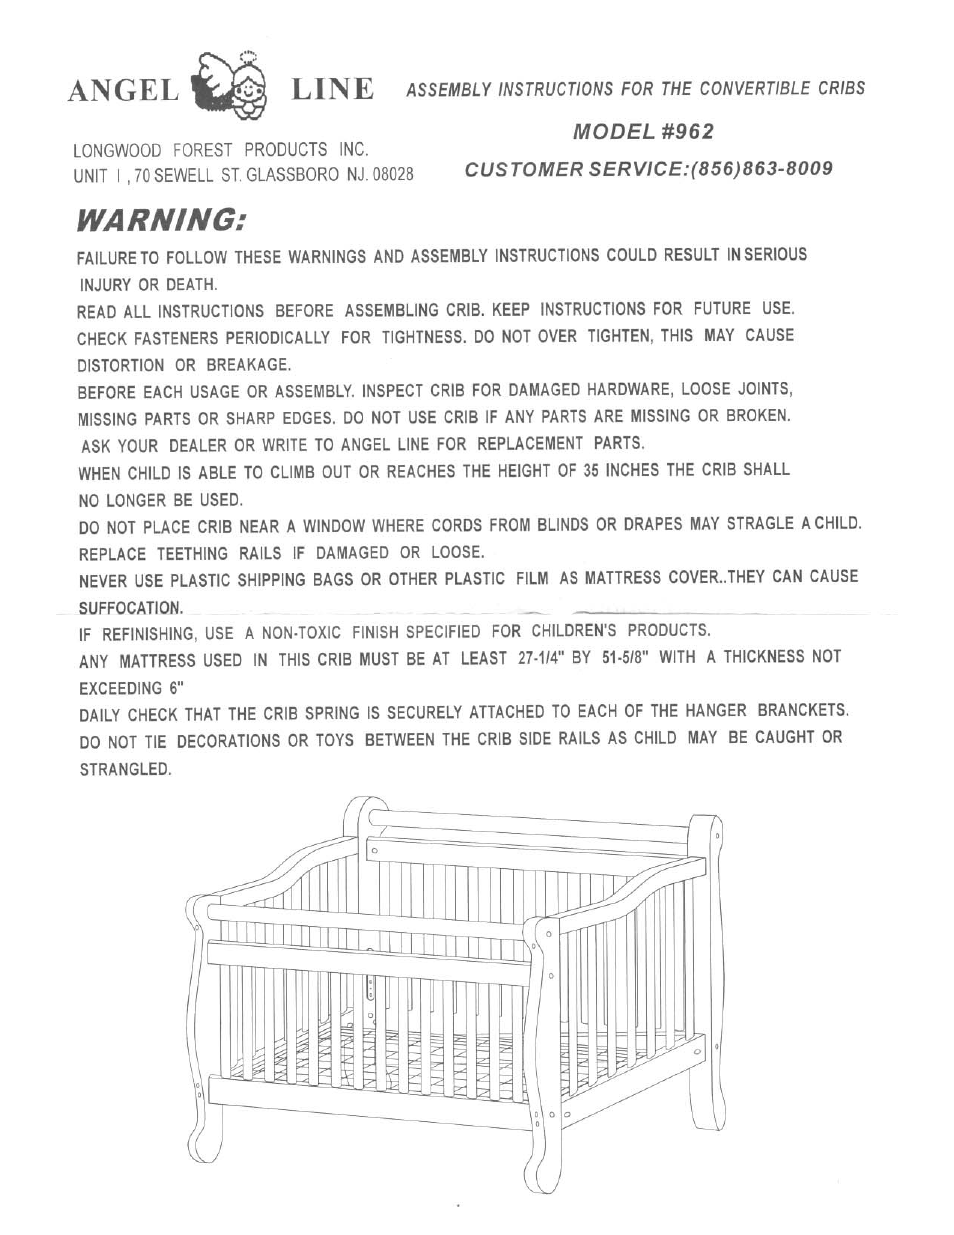 Angel Line Convertible Cribs 962 User Manual 1 Page